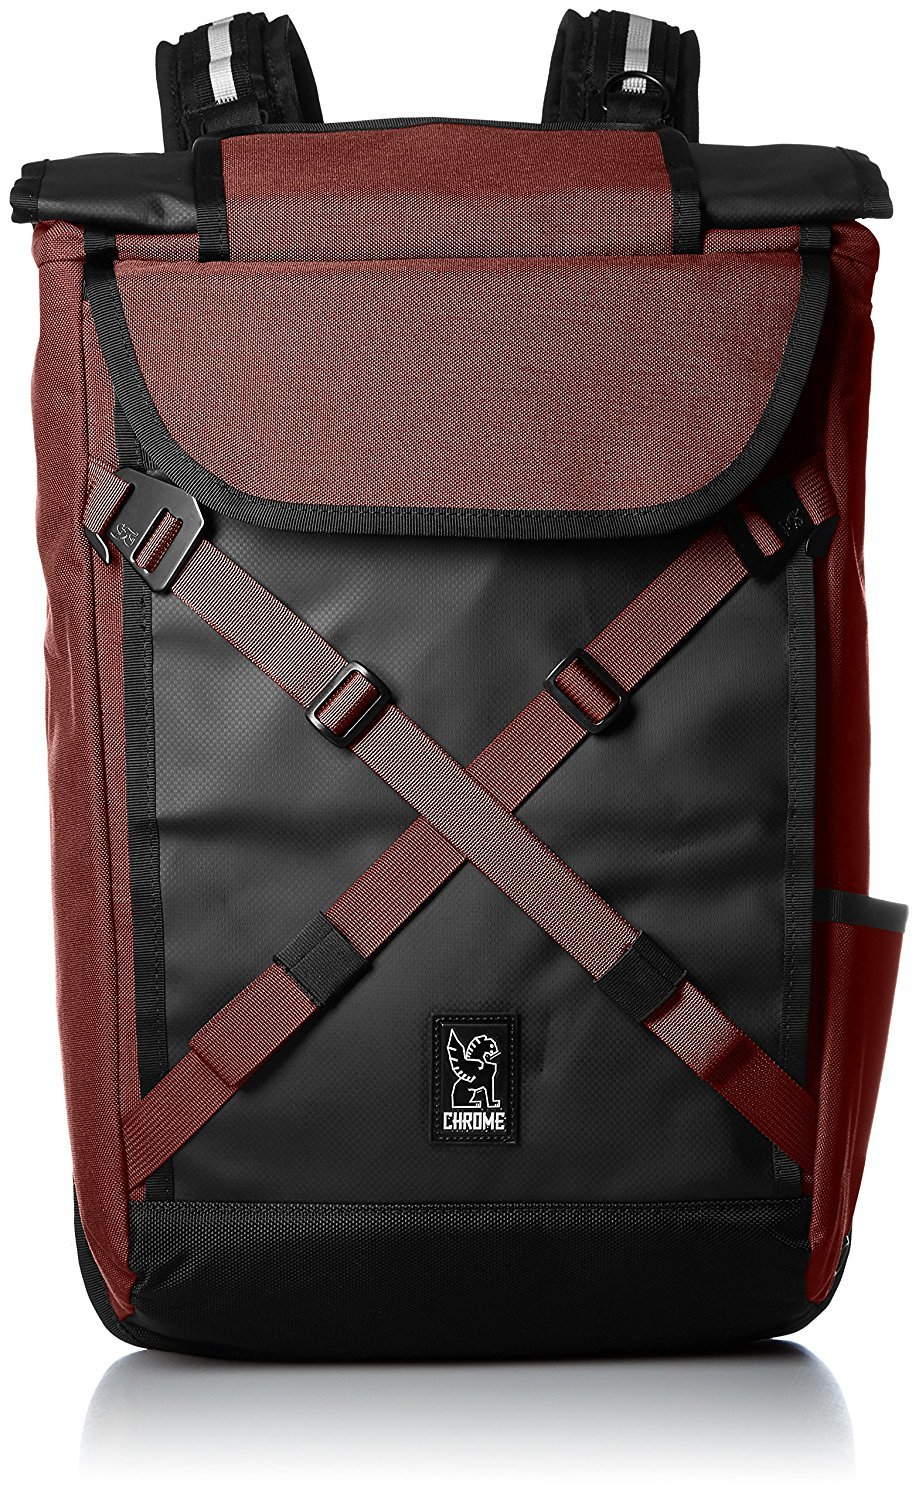 Chrome BG-190-BRIK Brick 25L Bravo 2.0 Backpack